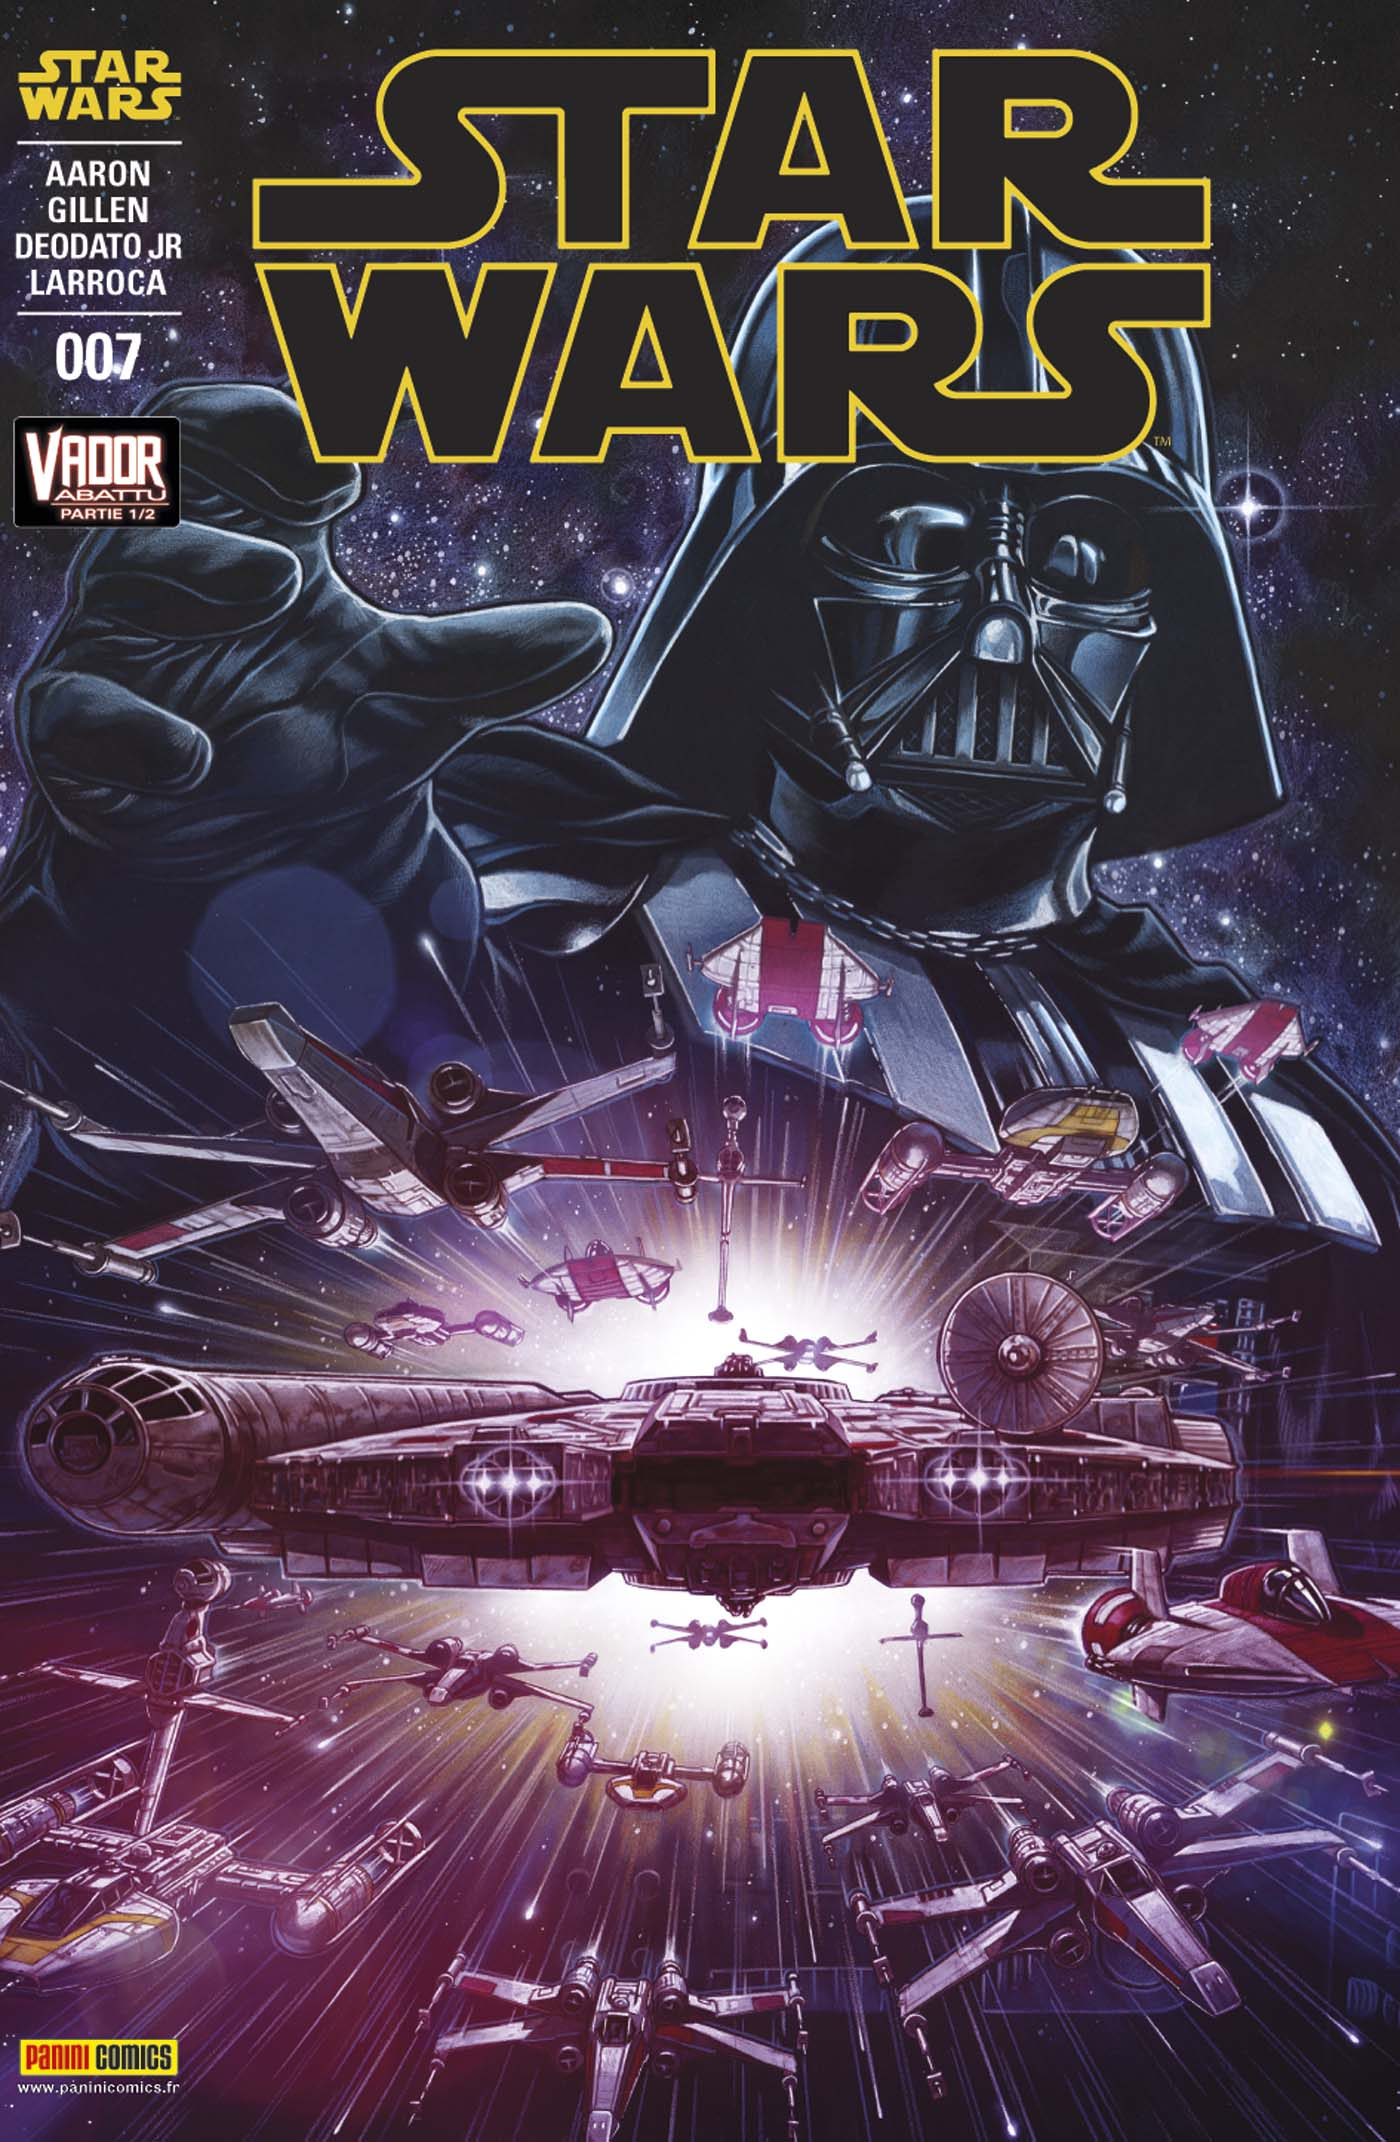 Star Wars Comics 7 - Couverture A